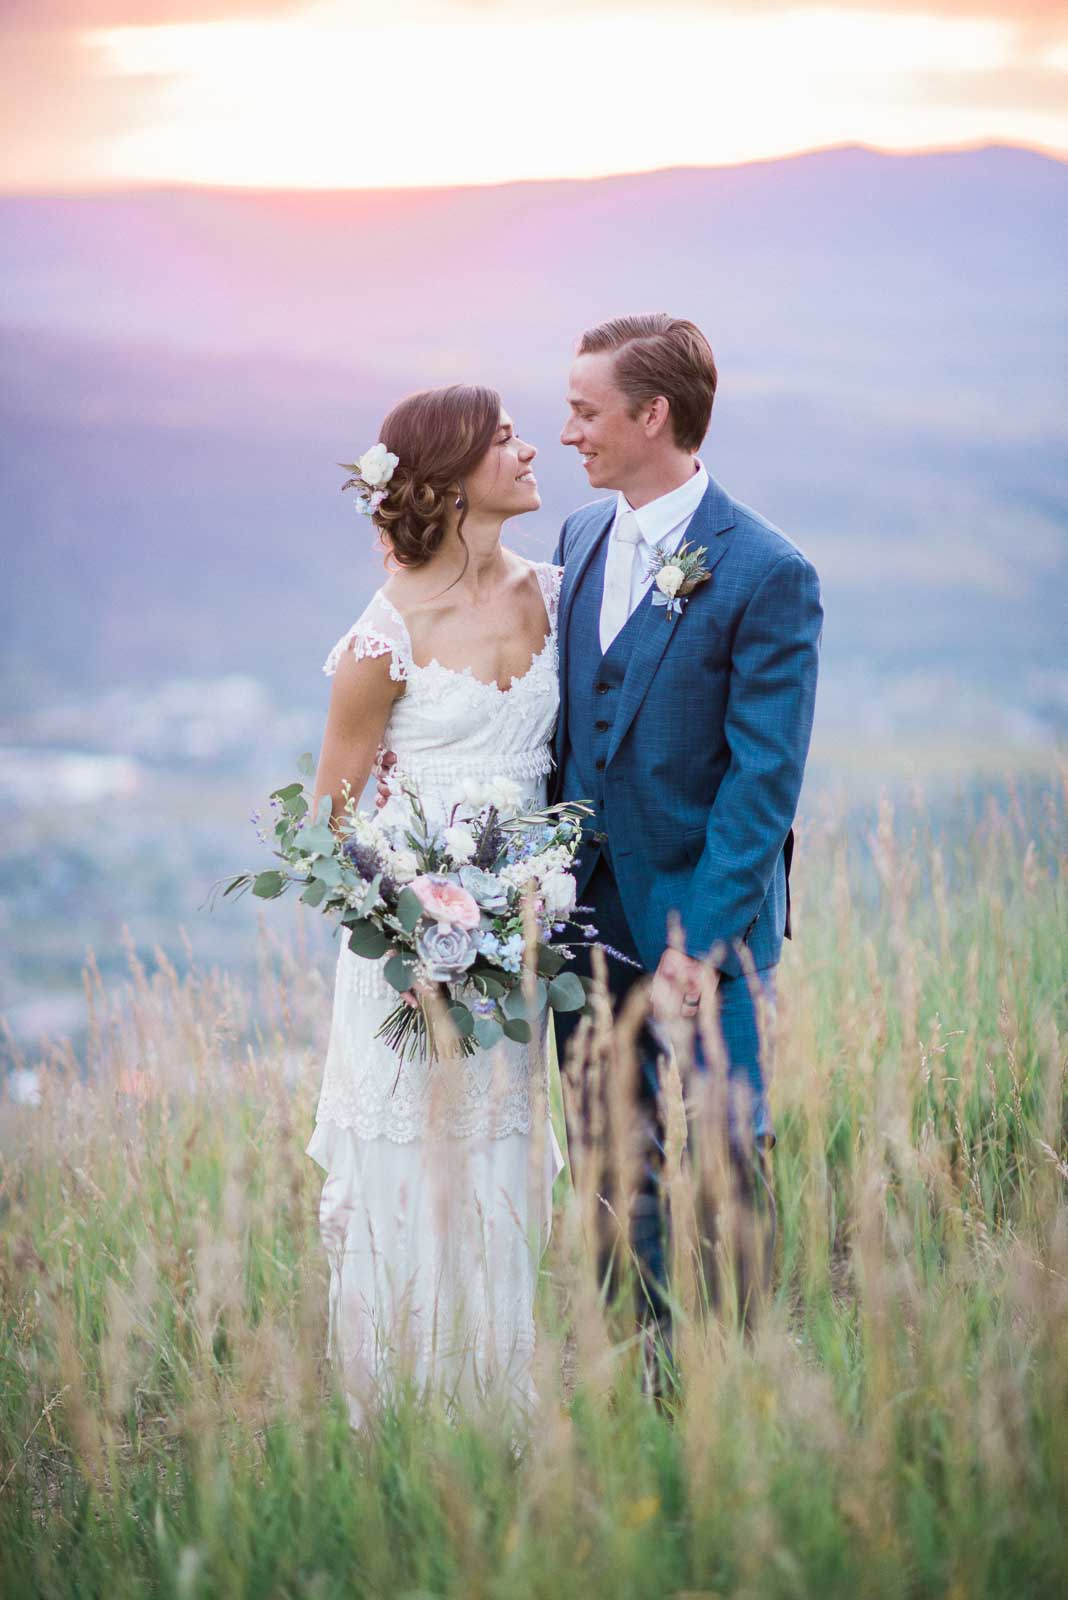 Ali | September 2015 | Steamboat Springs, Colorado |  Andy Barnhart Photography